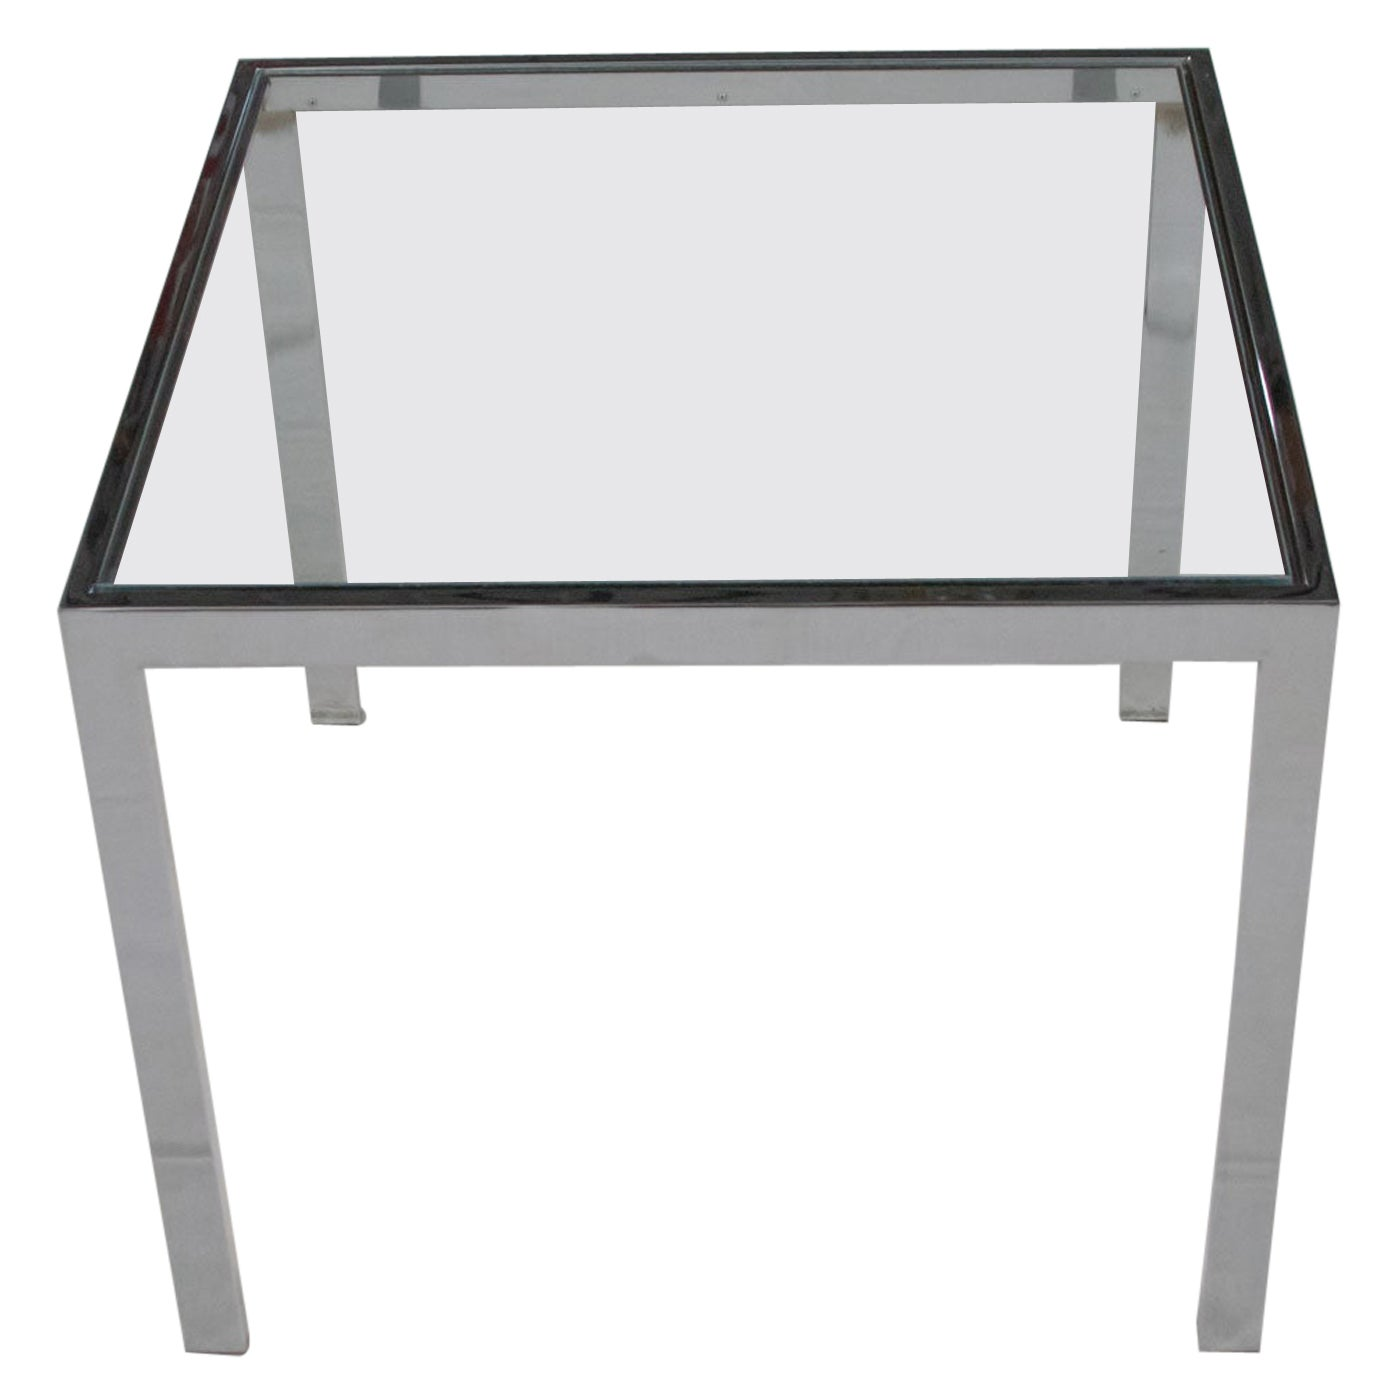 Mid-Century Modern Chrome and Glass Parsons End or Side Table after Baughman